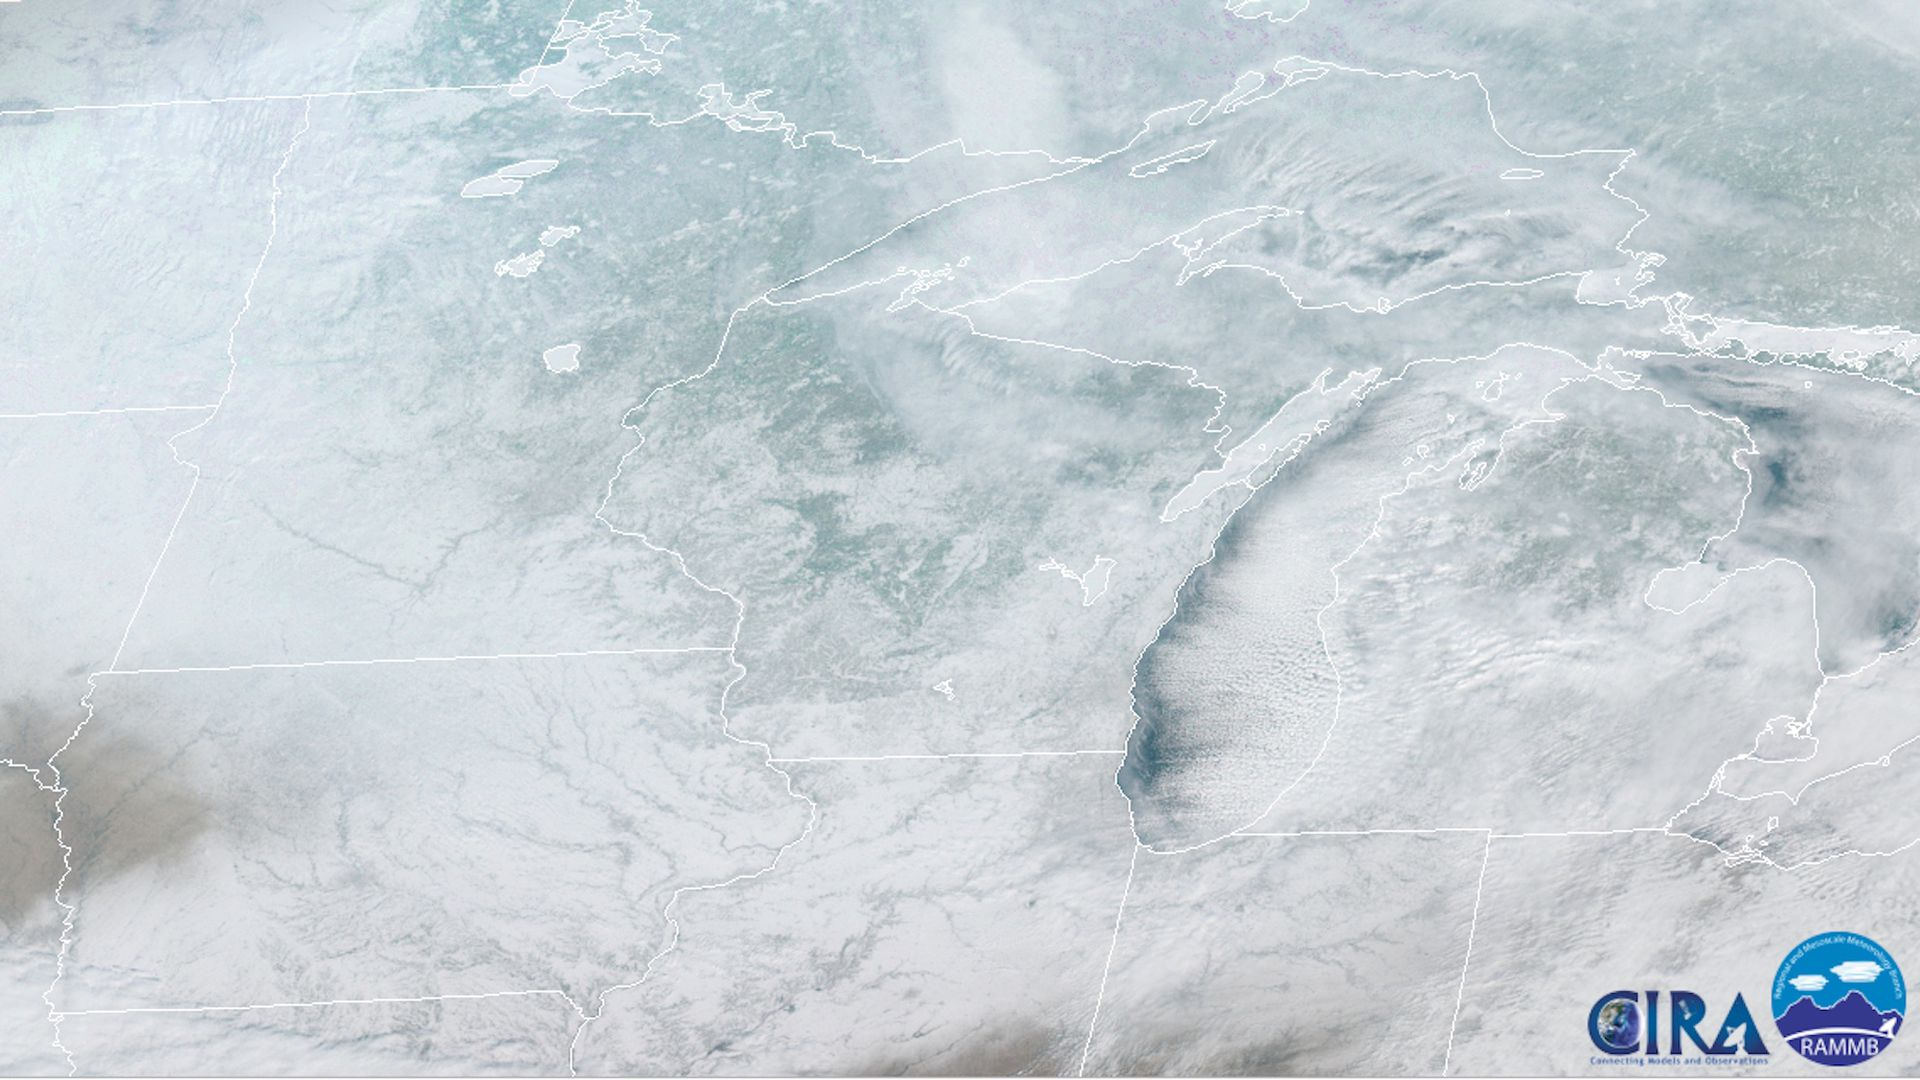 The frozen Midwest as seen from space.